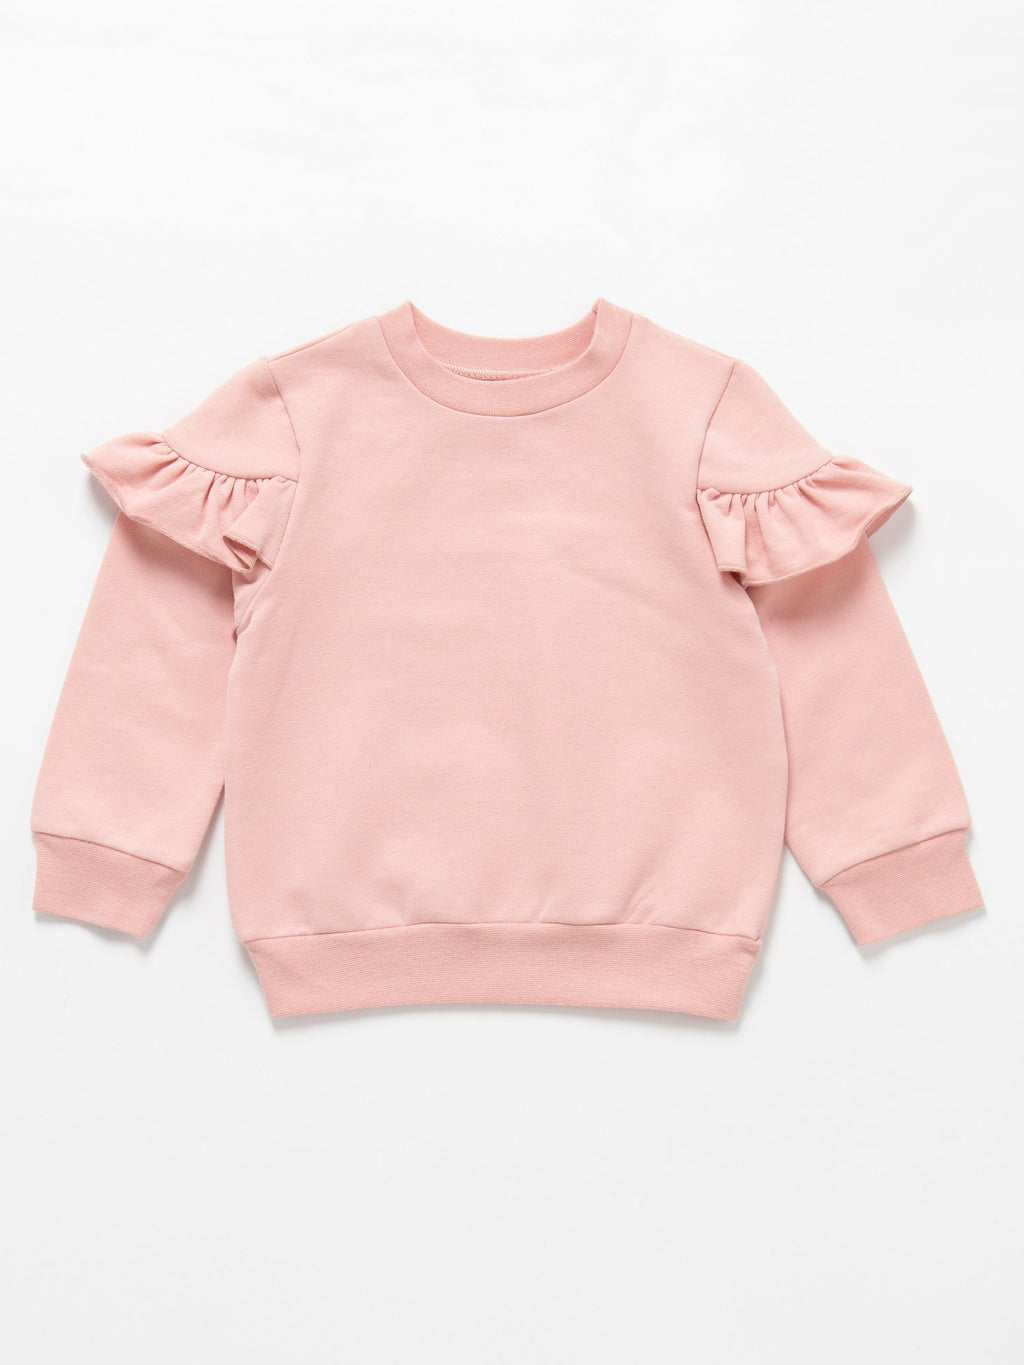 Artie - Frills French Terry Pink Long Sleeve Top - Stylemykid.com